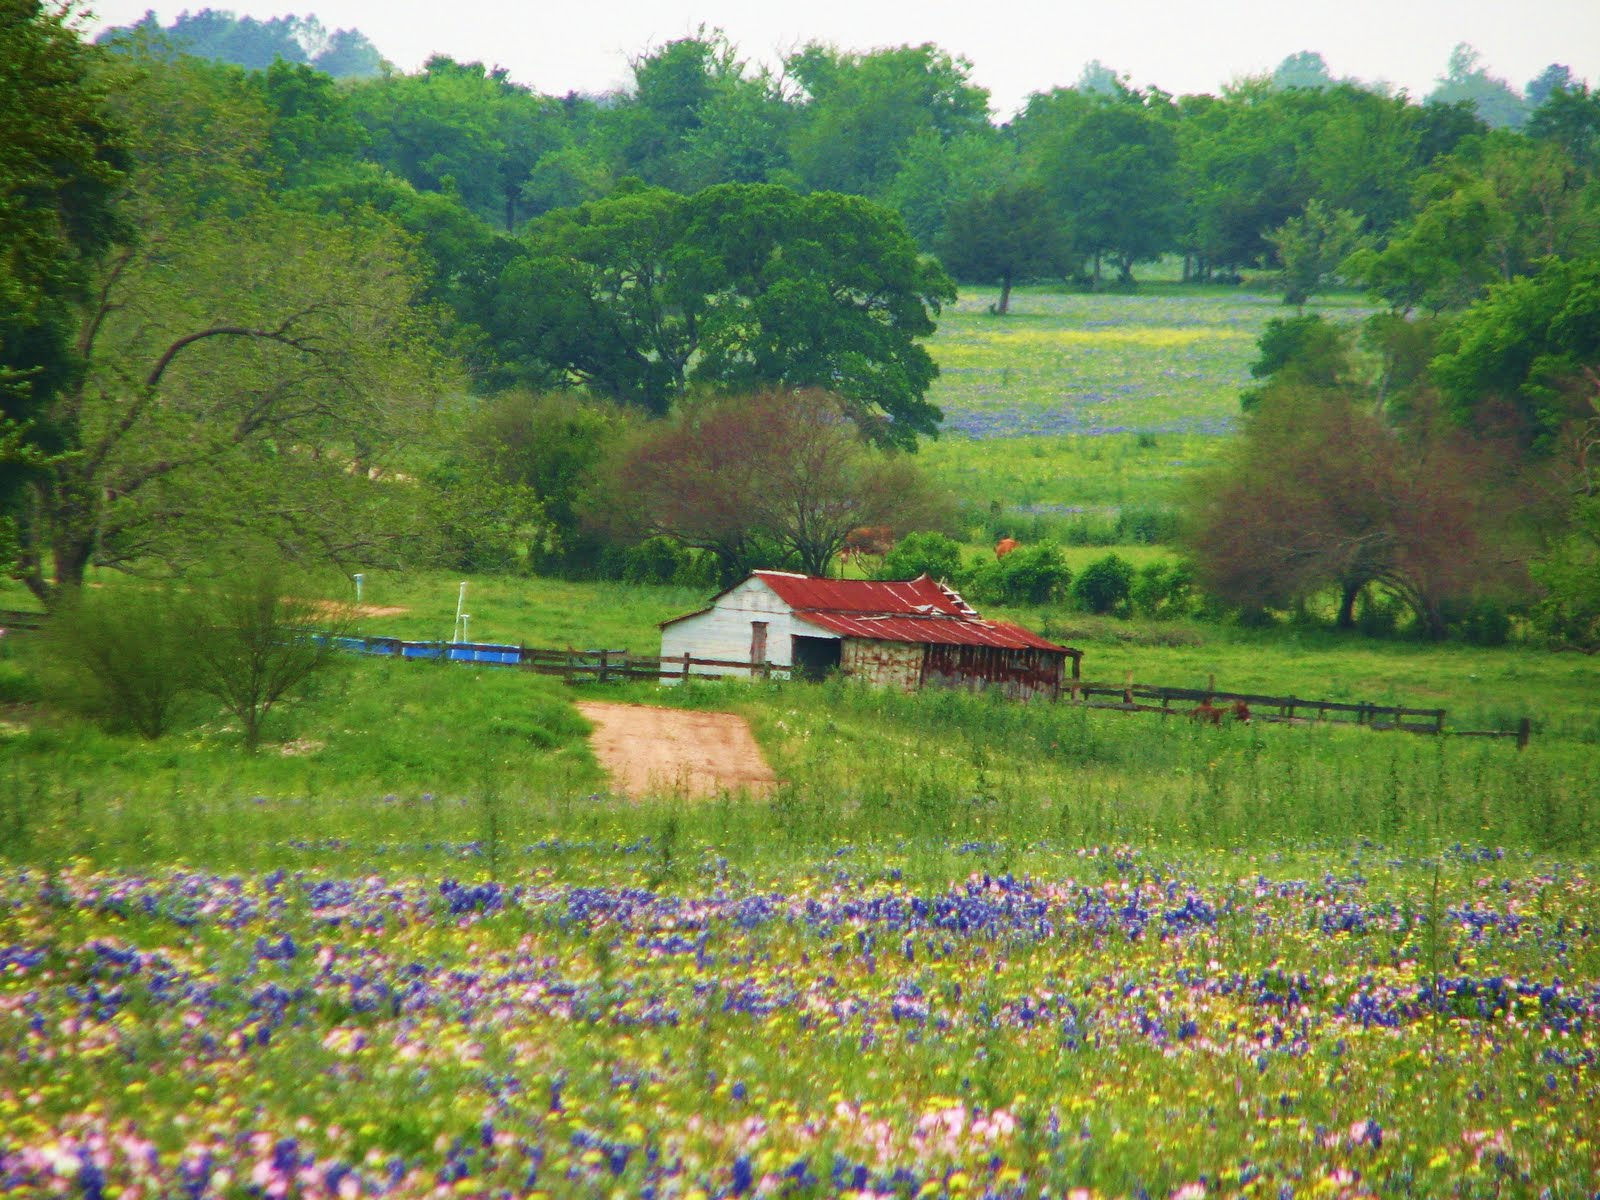 In Whispers and Shouts: Fields of Wildflowers